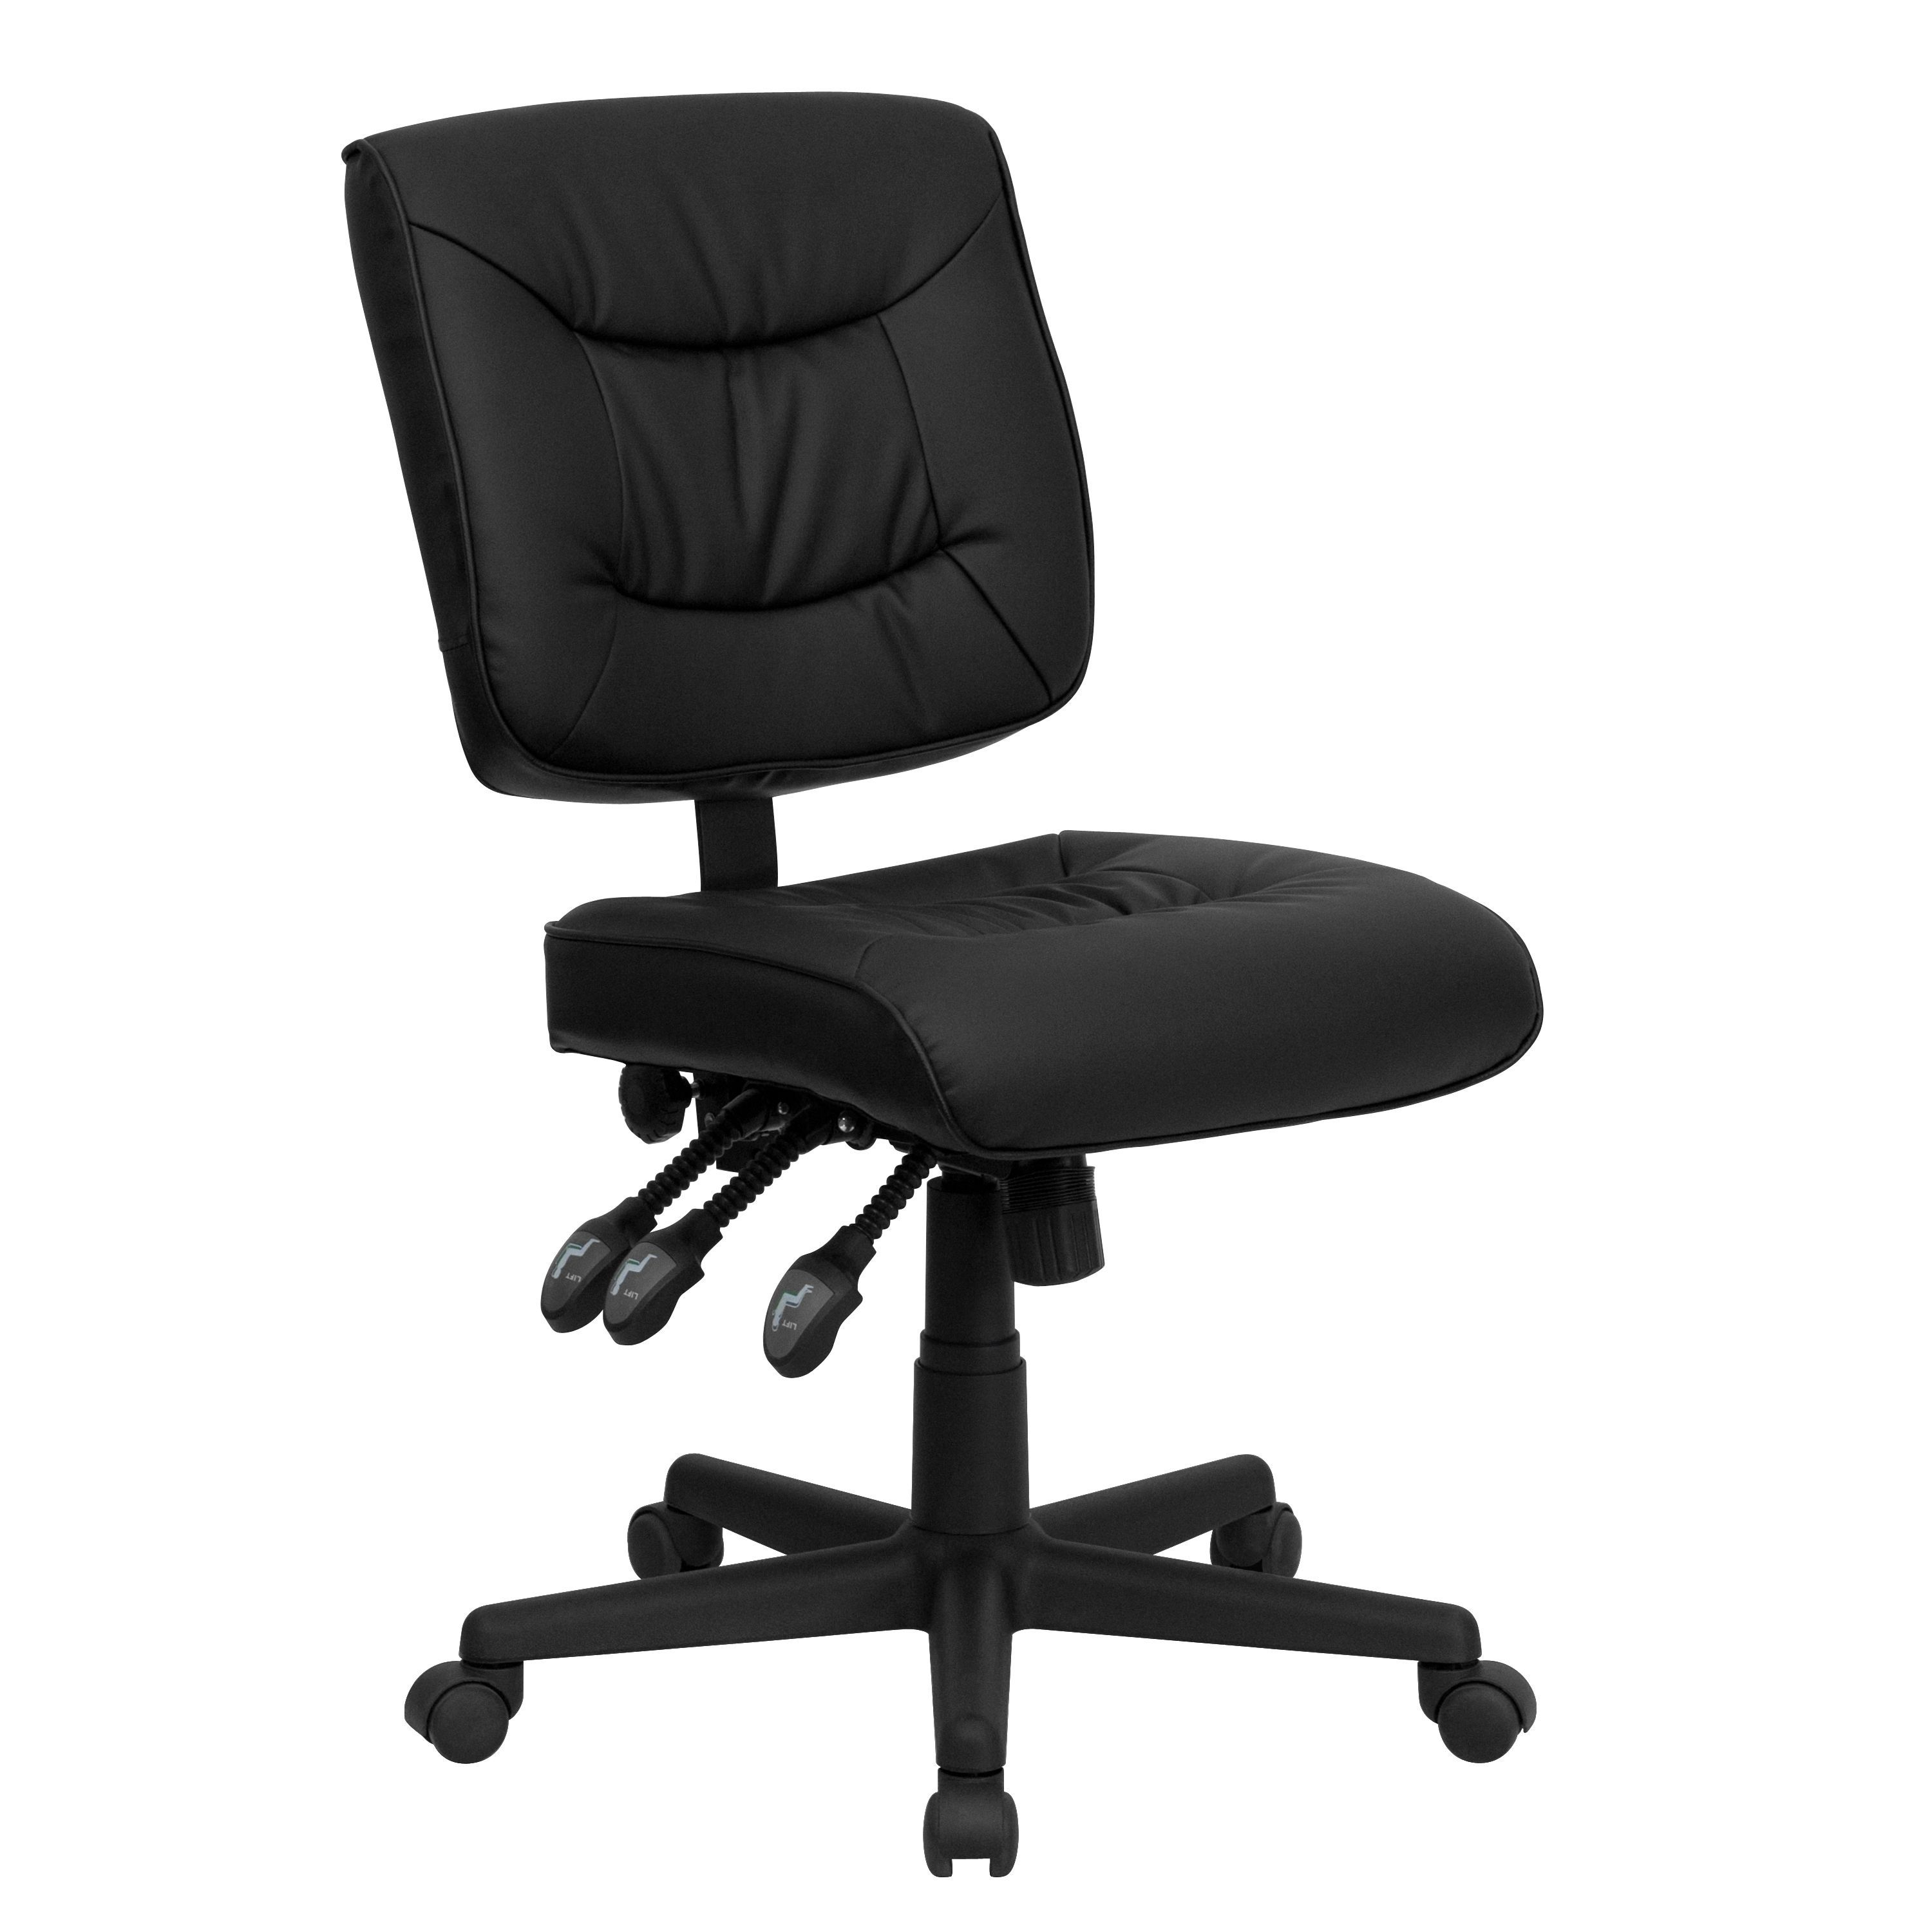 Awe Inspiring Cardle Armless Black Leather Adjustable Swivel Office Chair Pdpeps Interior Chair Design Pdpepsorg